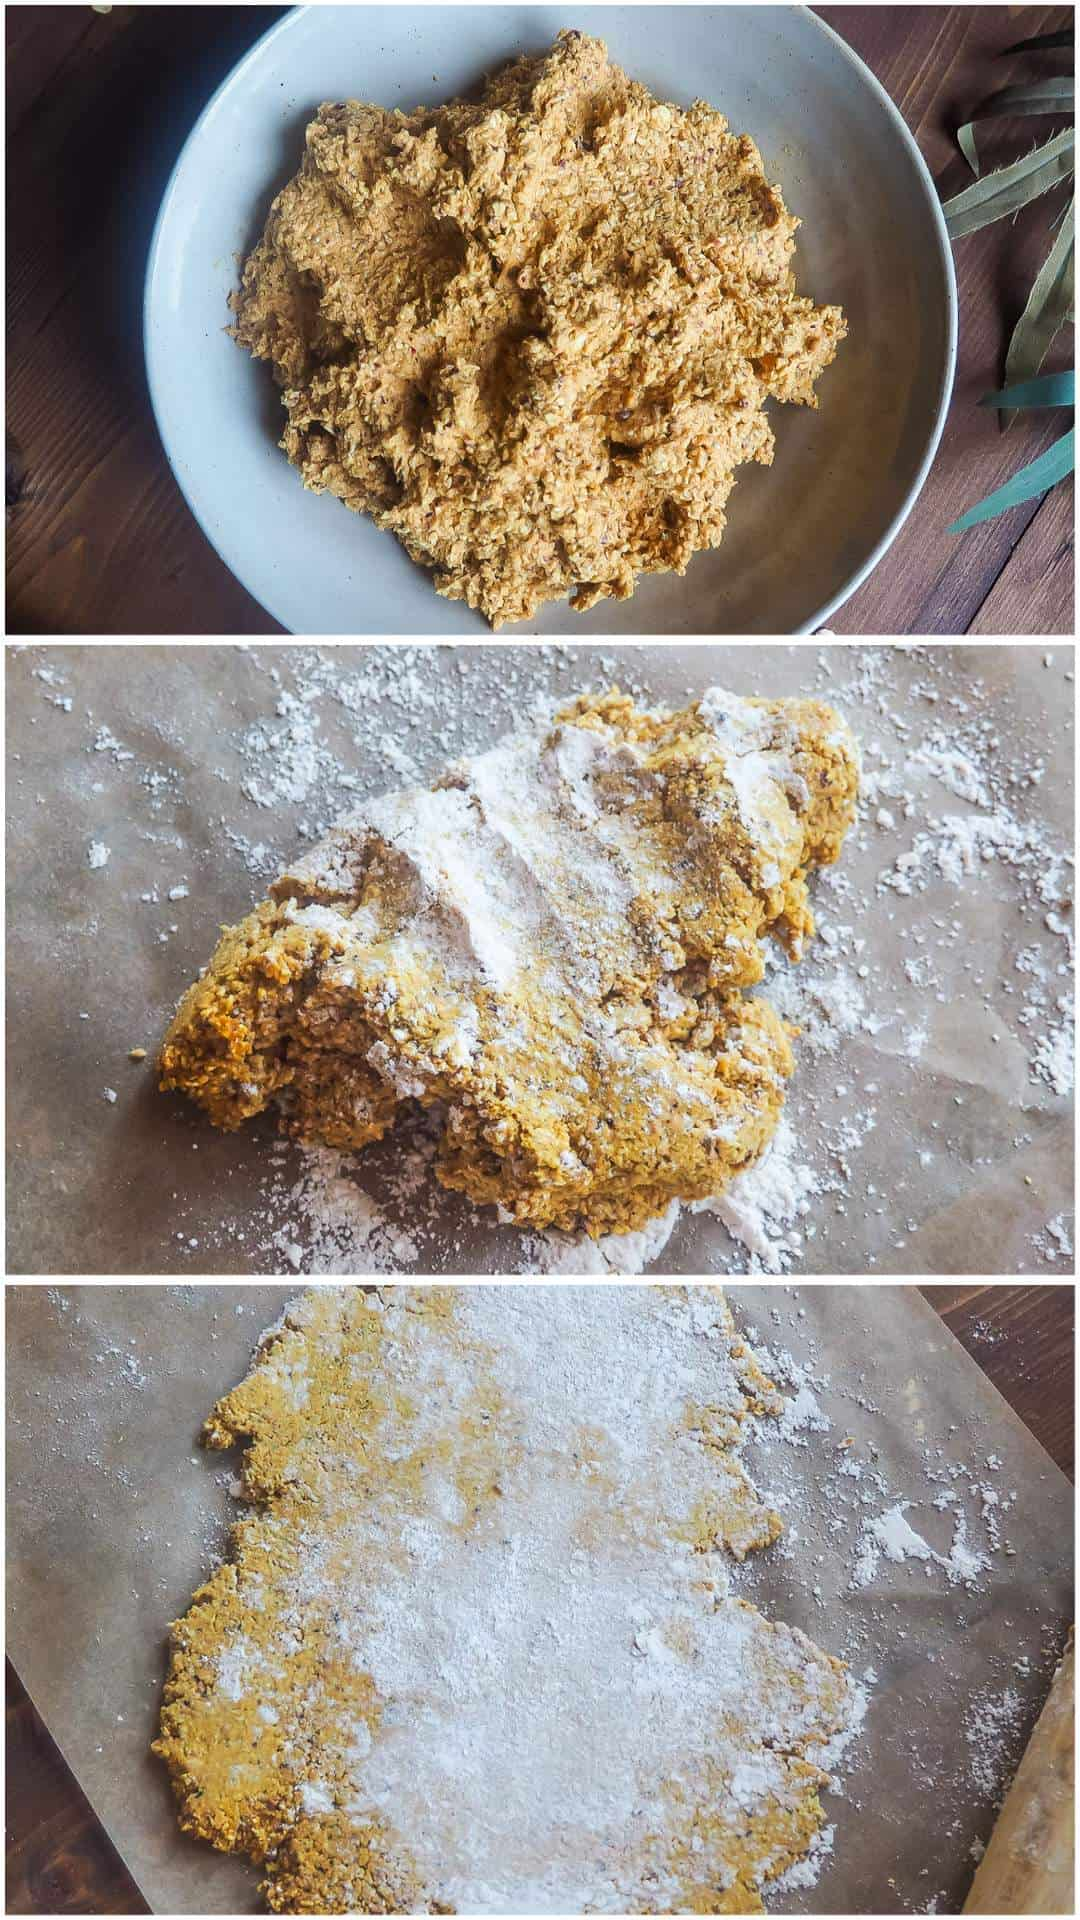 A collage of images showing how to roll out dough for sweet potato and cranberry dog treats.